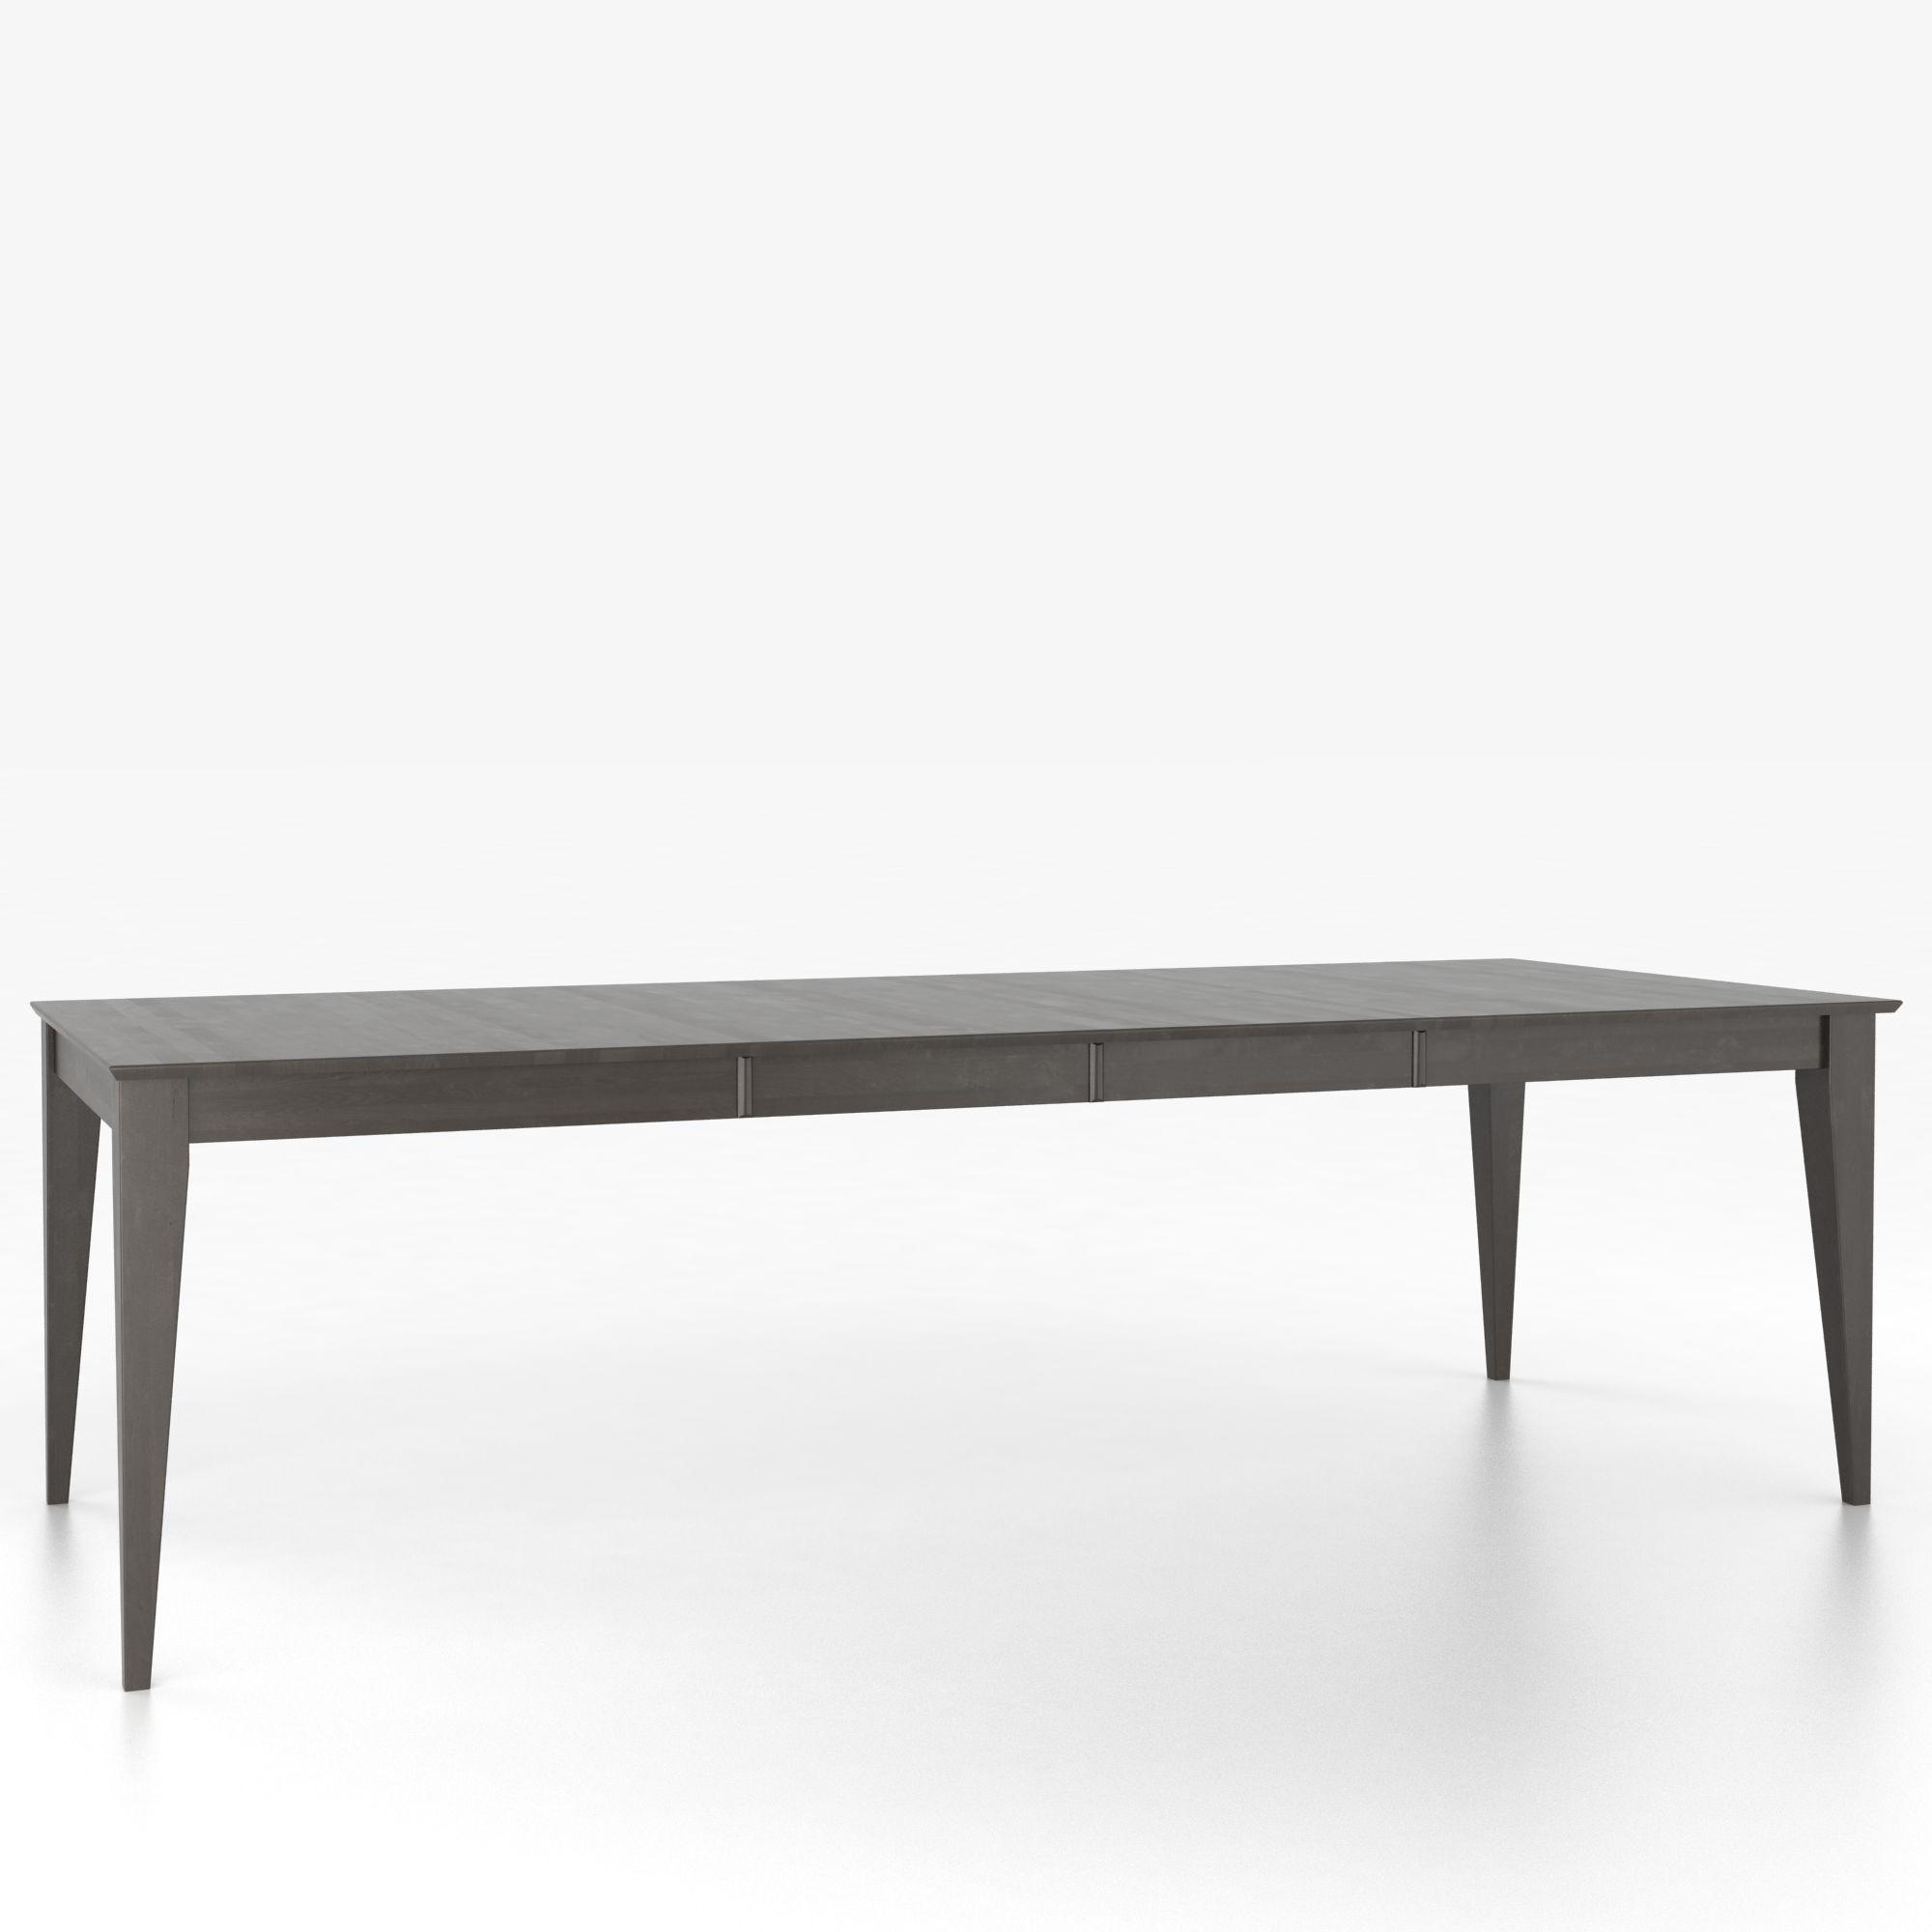 Custom Dining Tables Customizable Rectangular Table with Legs by Canadel at Dinette Depot